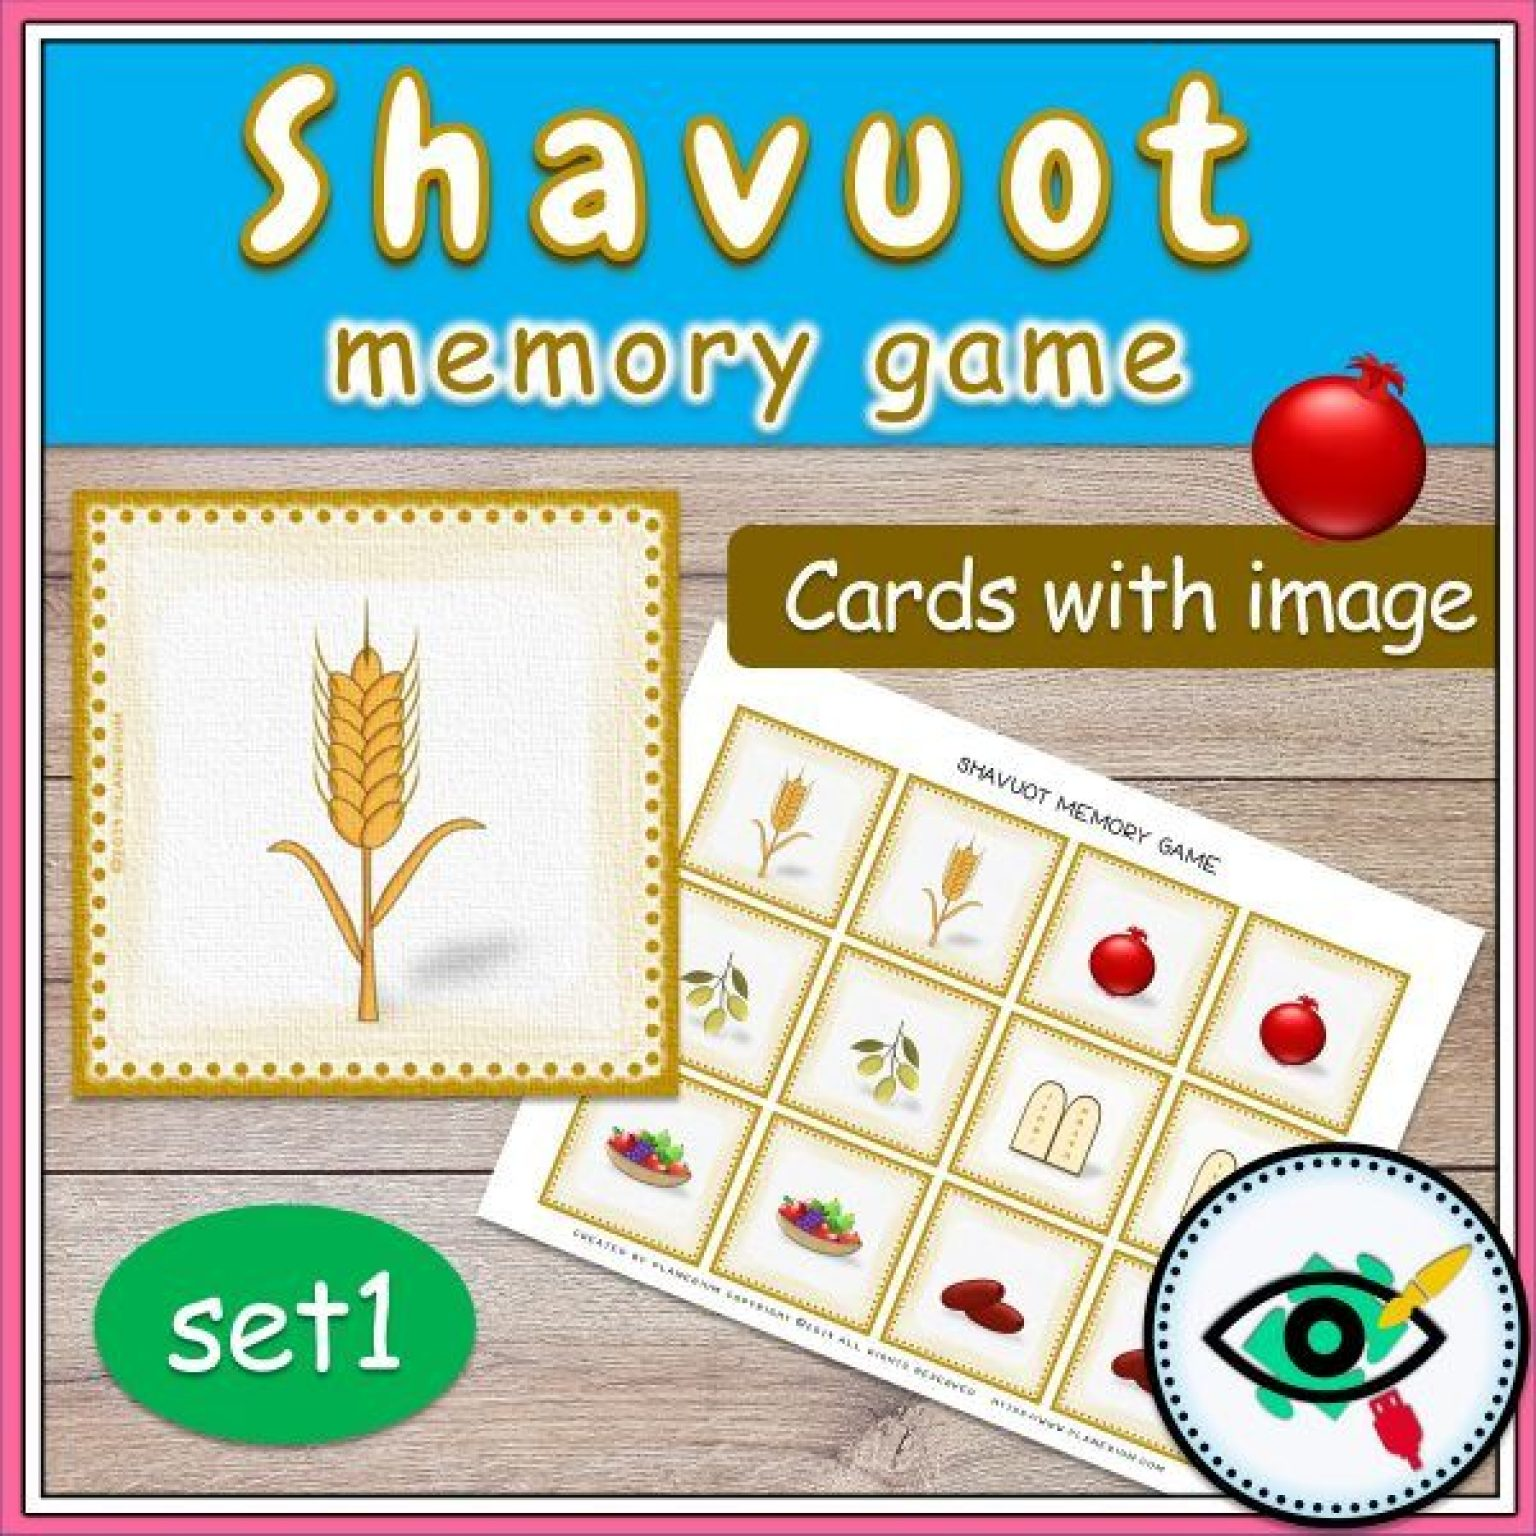 shavuot-memory-game-title2